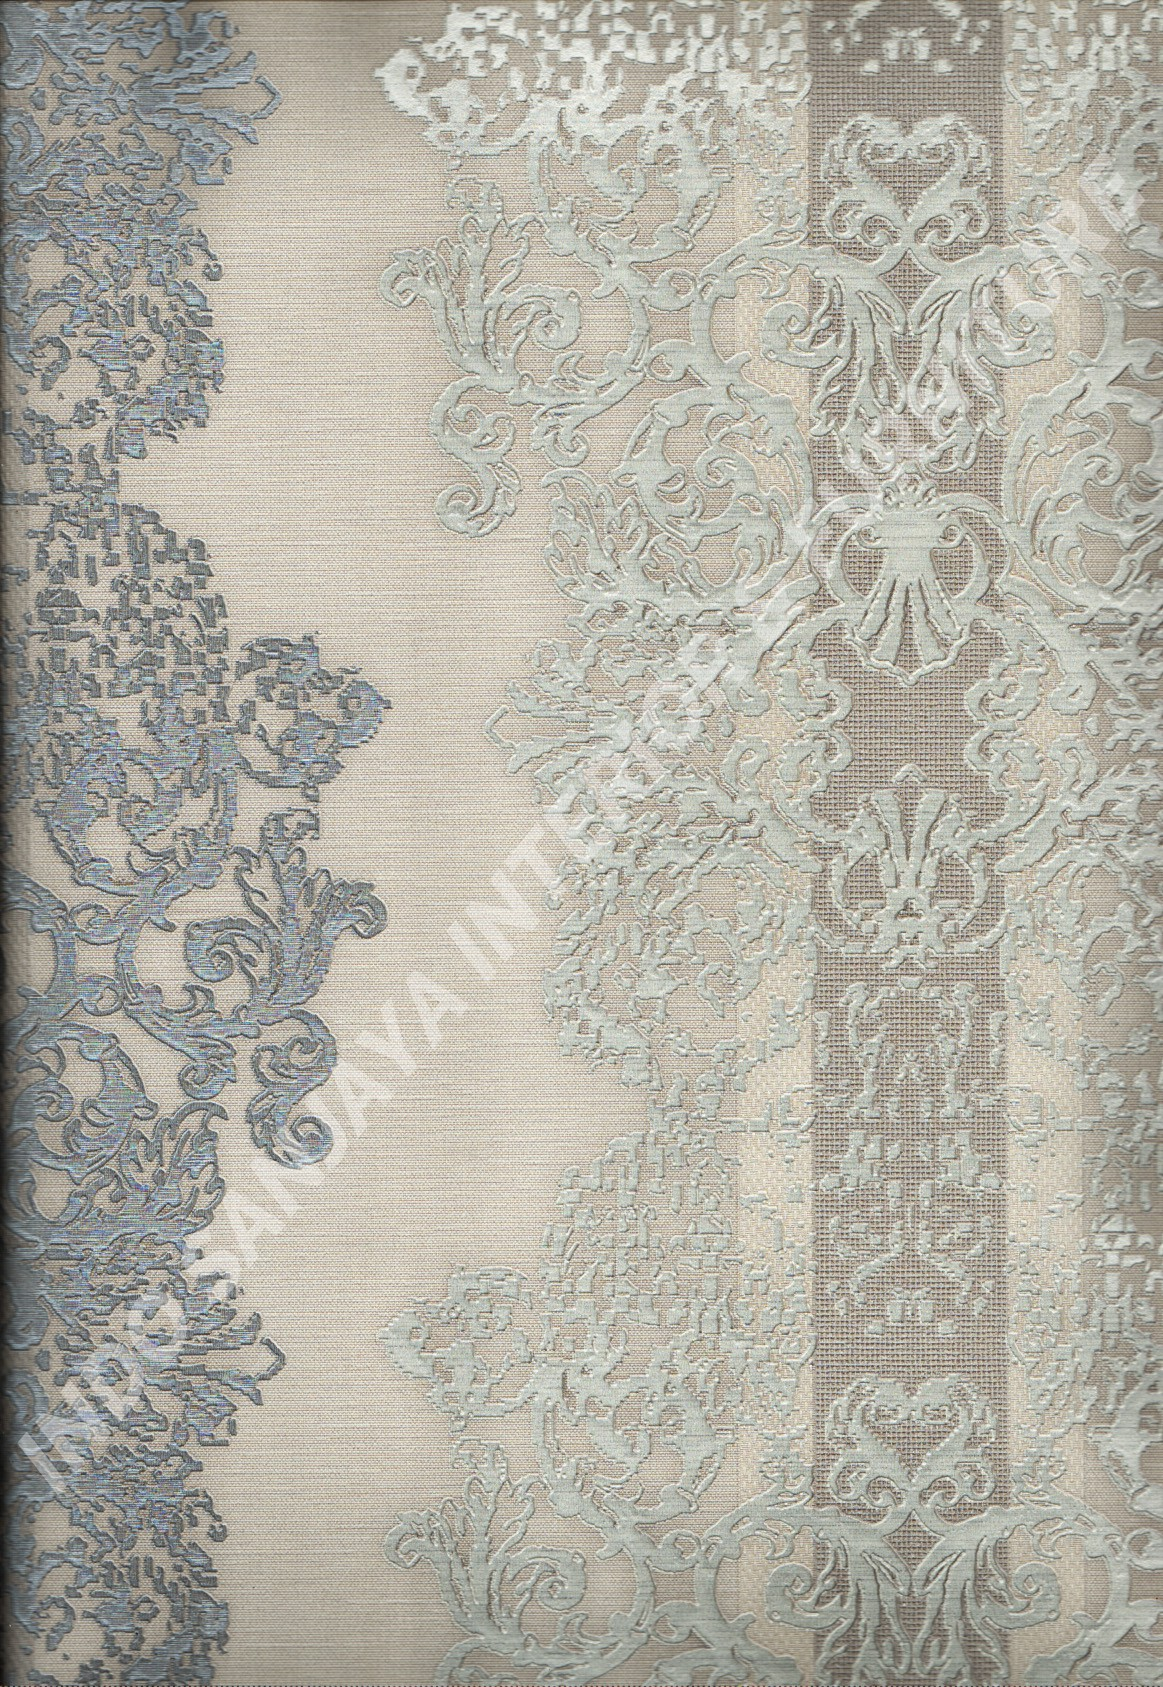 wallpaper   Wallpaper Bunga 3014:3014 corak  warna